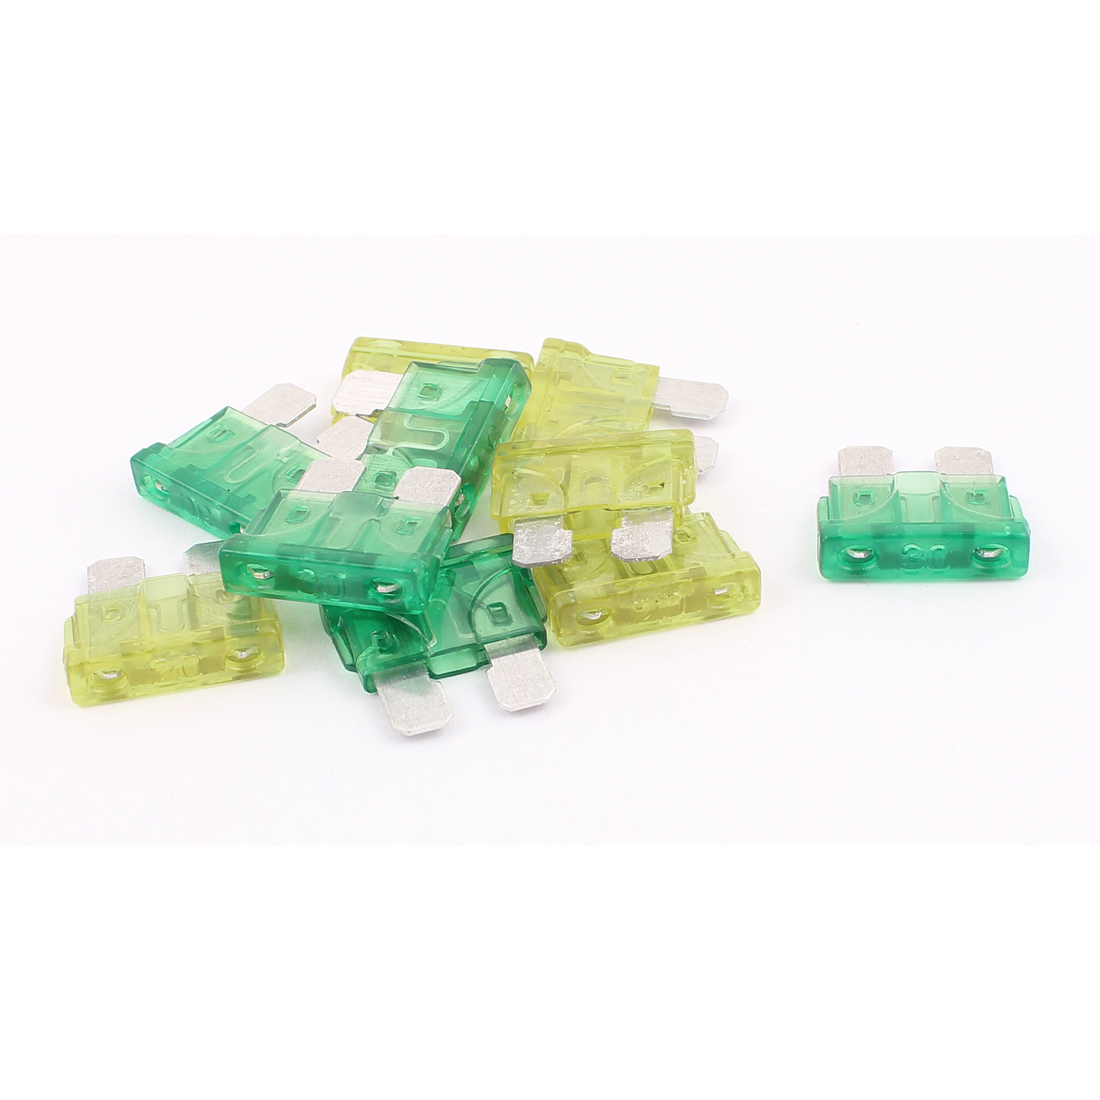 10pcs Motorbike Car Vehicle Caravan SUV Boat ATC ATO Mini Blade Fuses 30A 20A Yellow Green